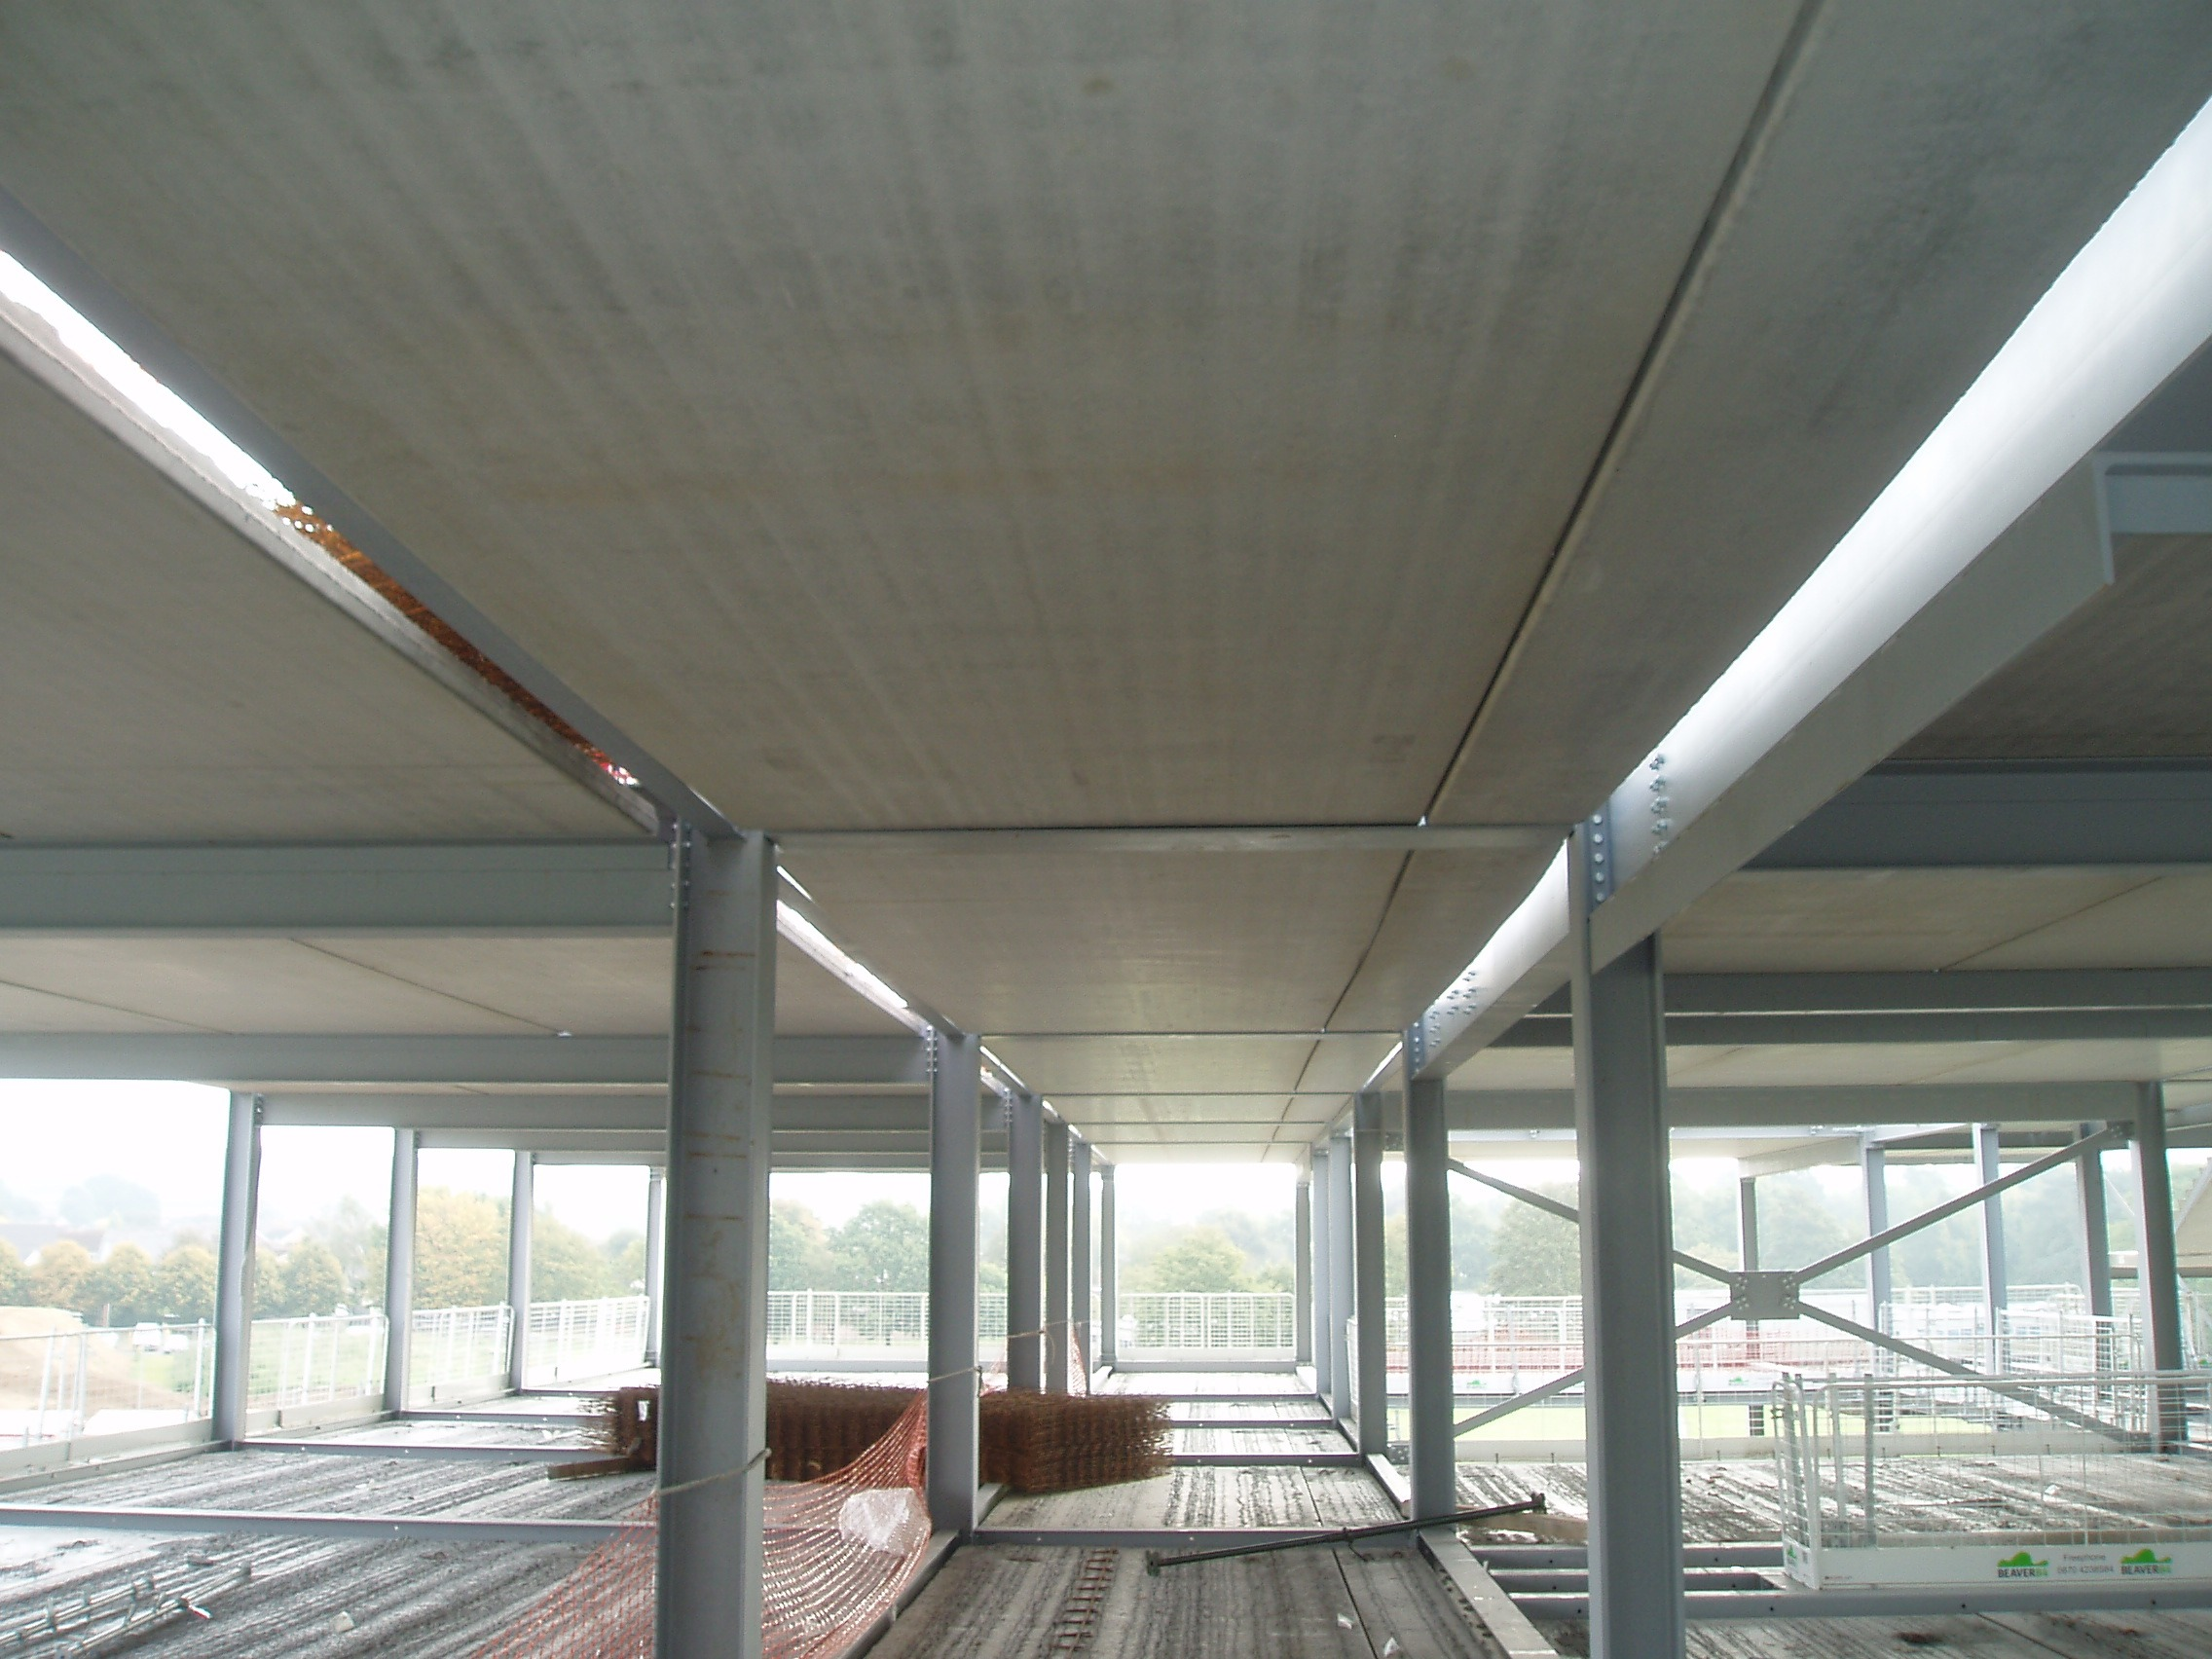 Wide Slab Flooring and Exposed Soffit at Thomas Gainsborough Academy